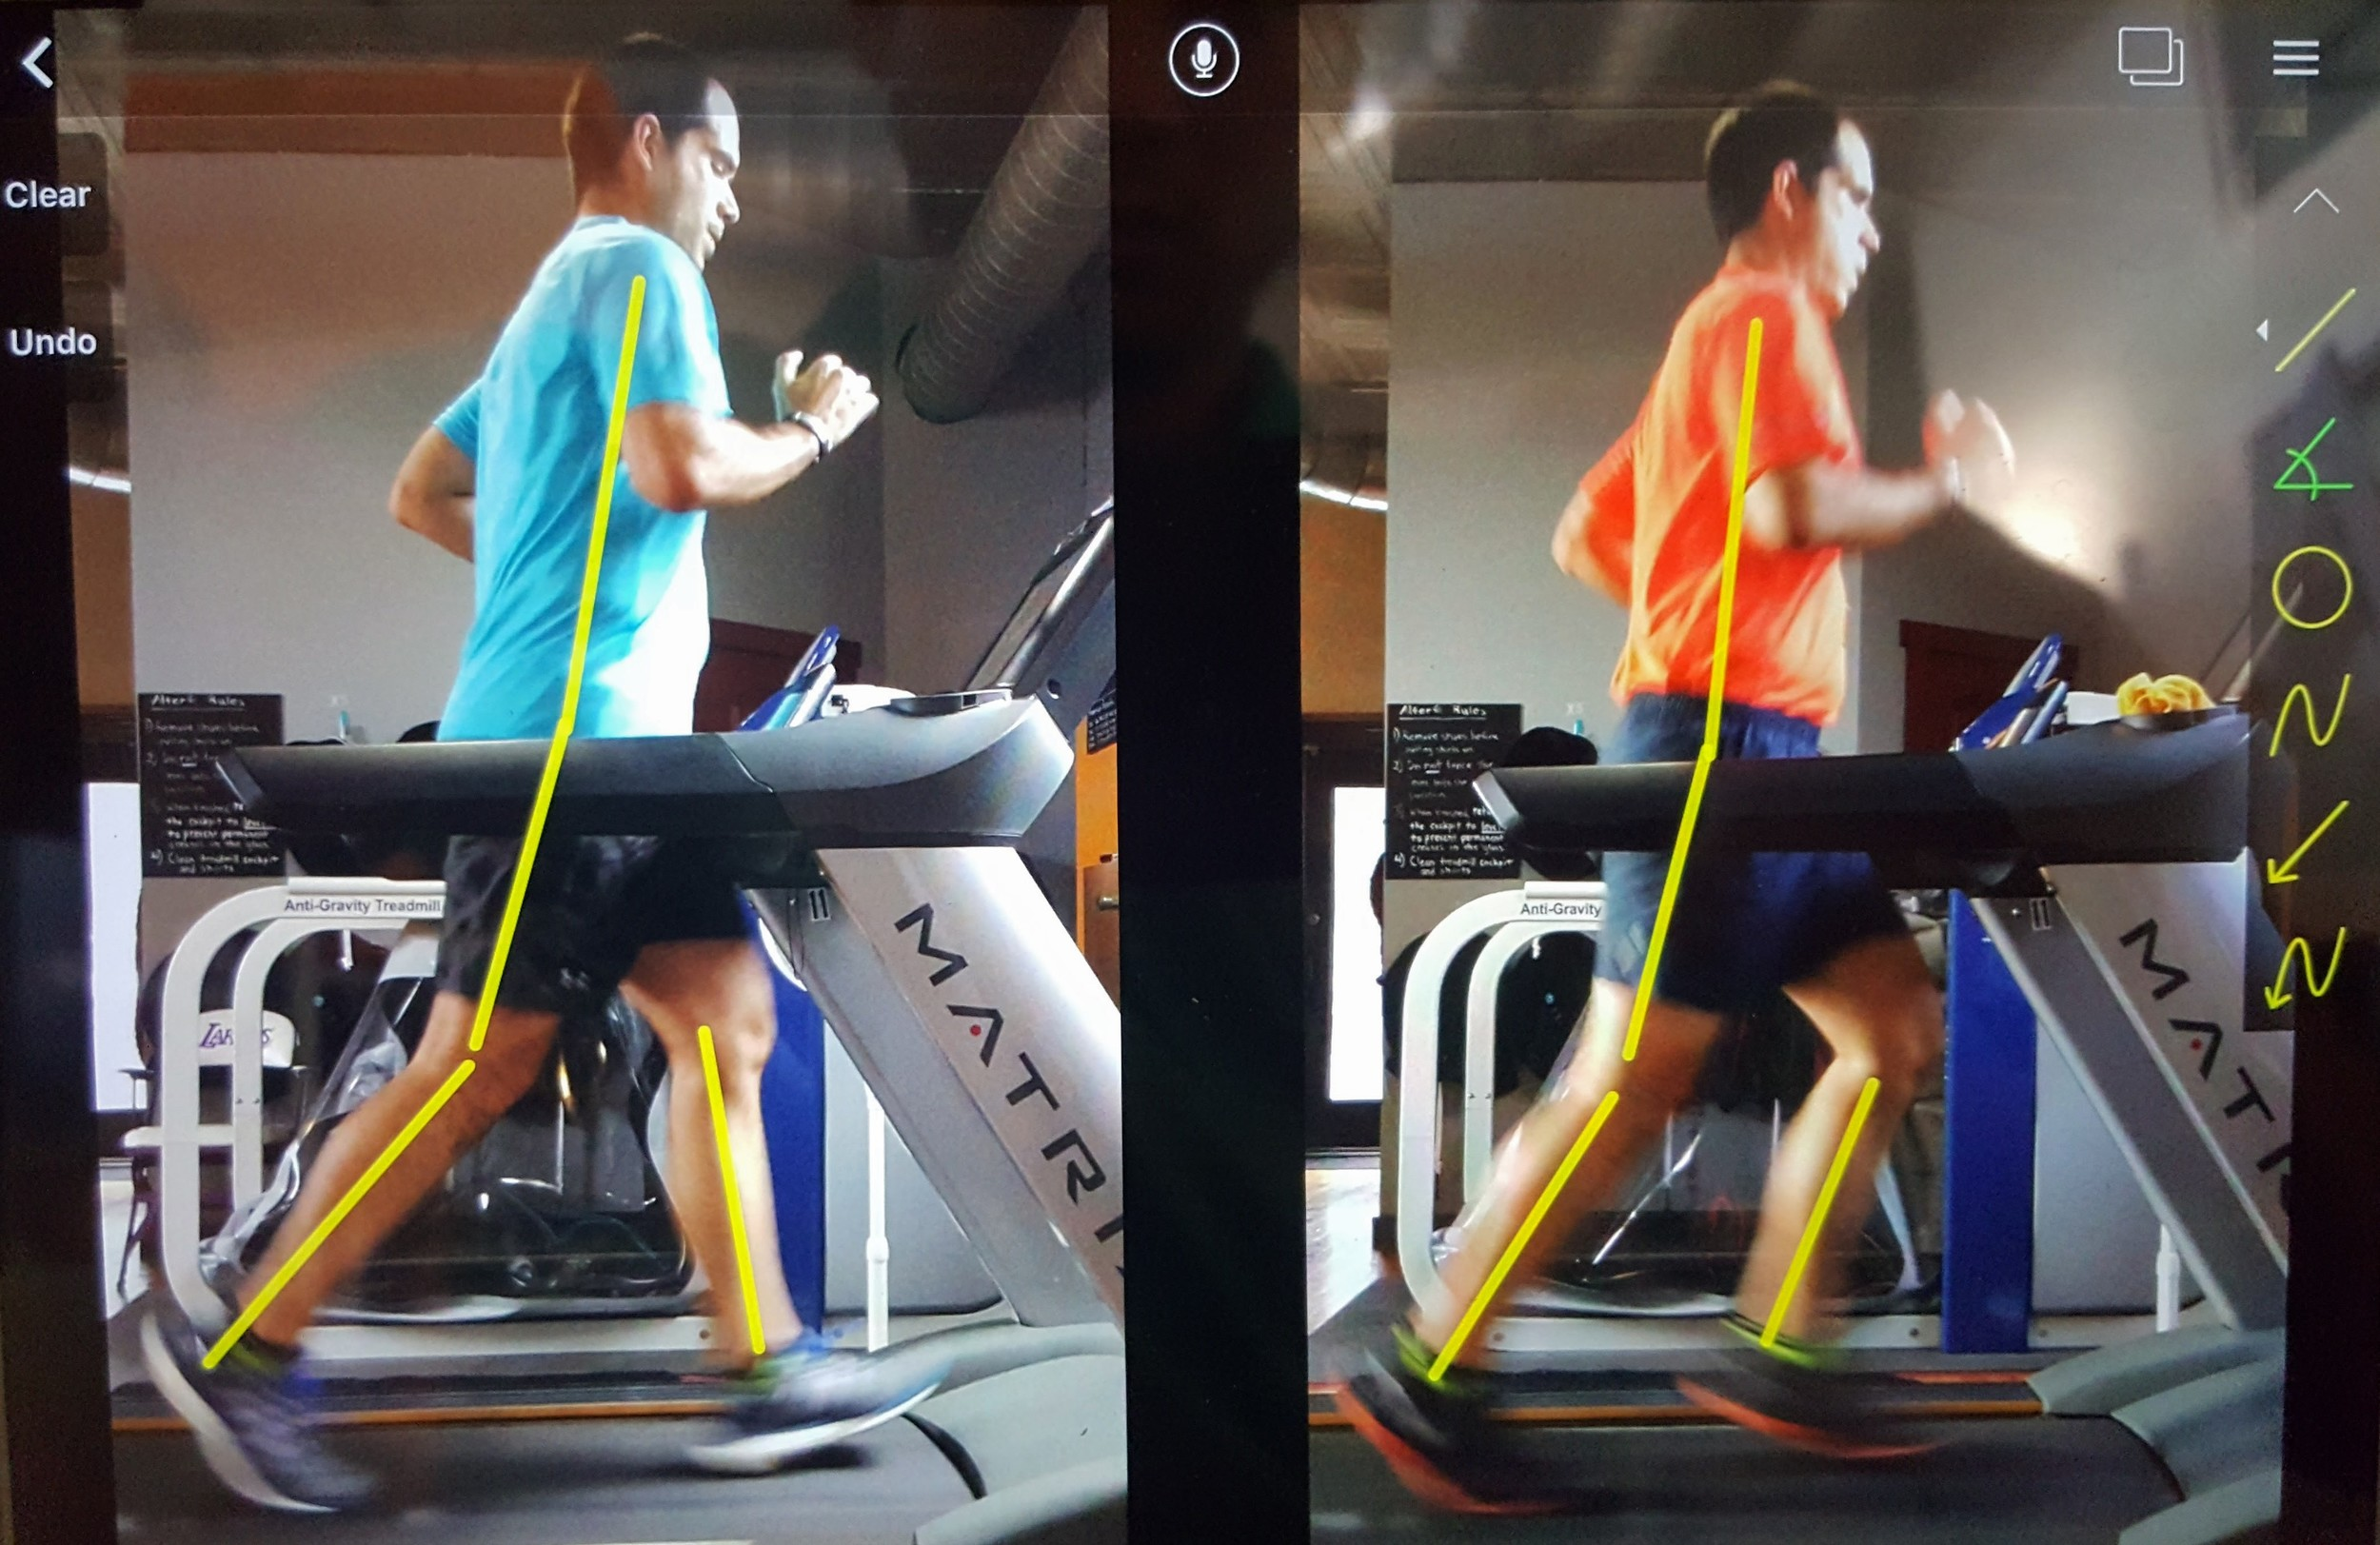 CLIENT had a step cadence of 180-184 at both the initial evaluation AND at the follow-up visit. (**Increasing cadence does not always automatically improve your mechanics**) Cuing and appropriate drill assignments improved his legs' position to transfer force into the ground and to set up a more optimal foot strike with the other leg.